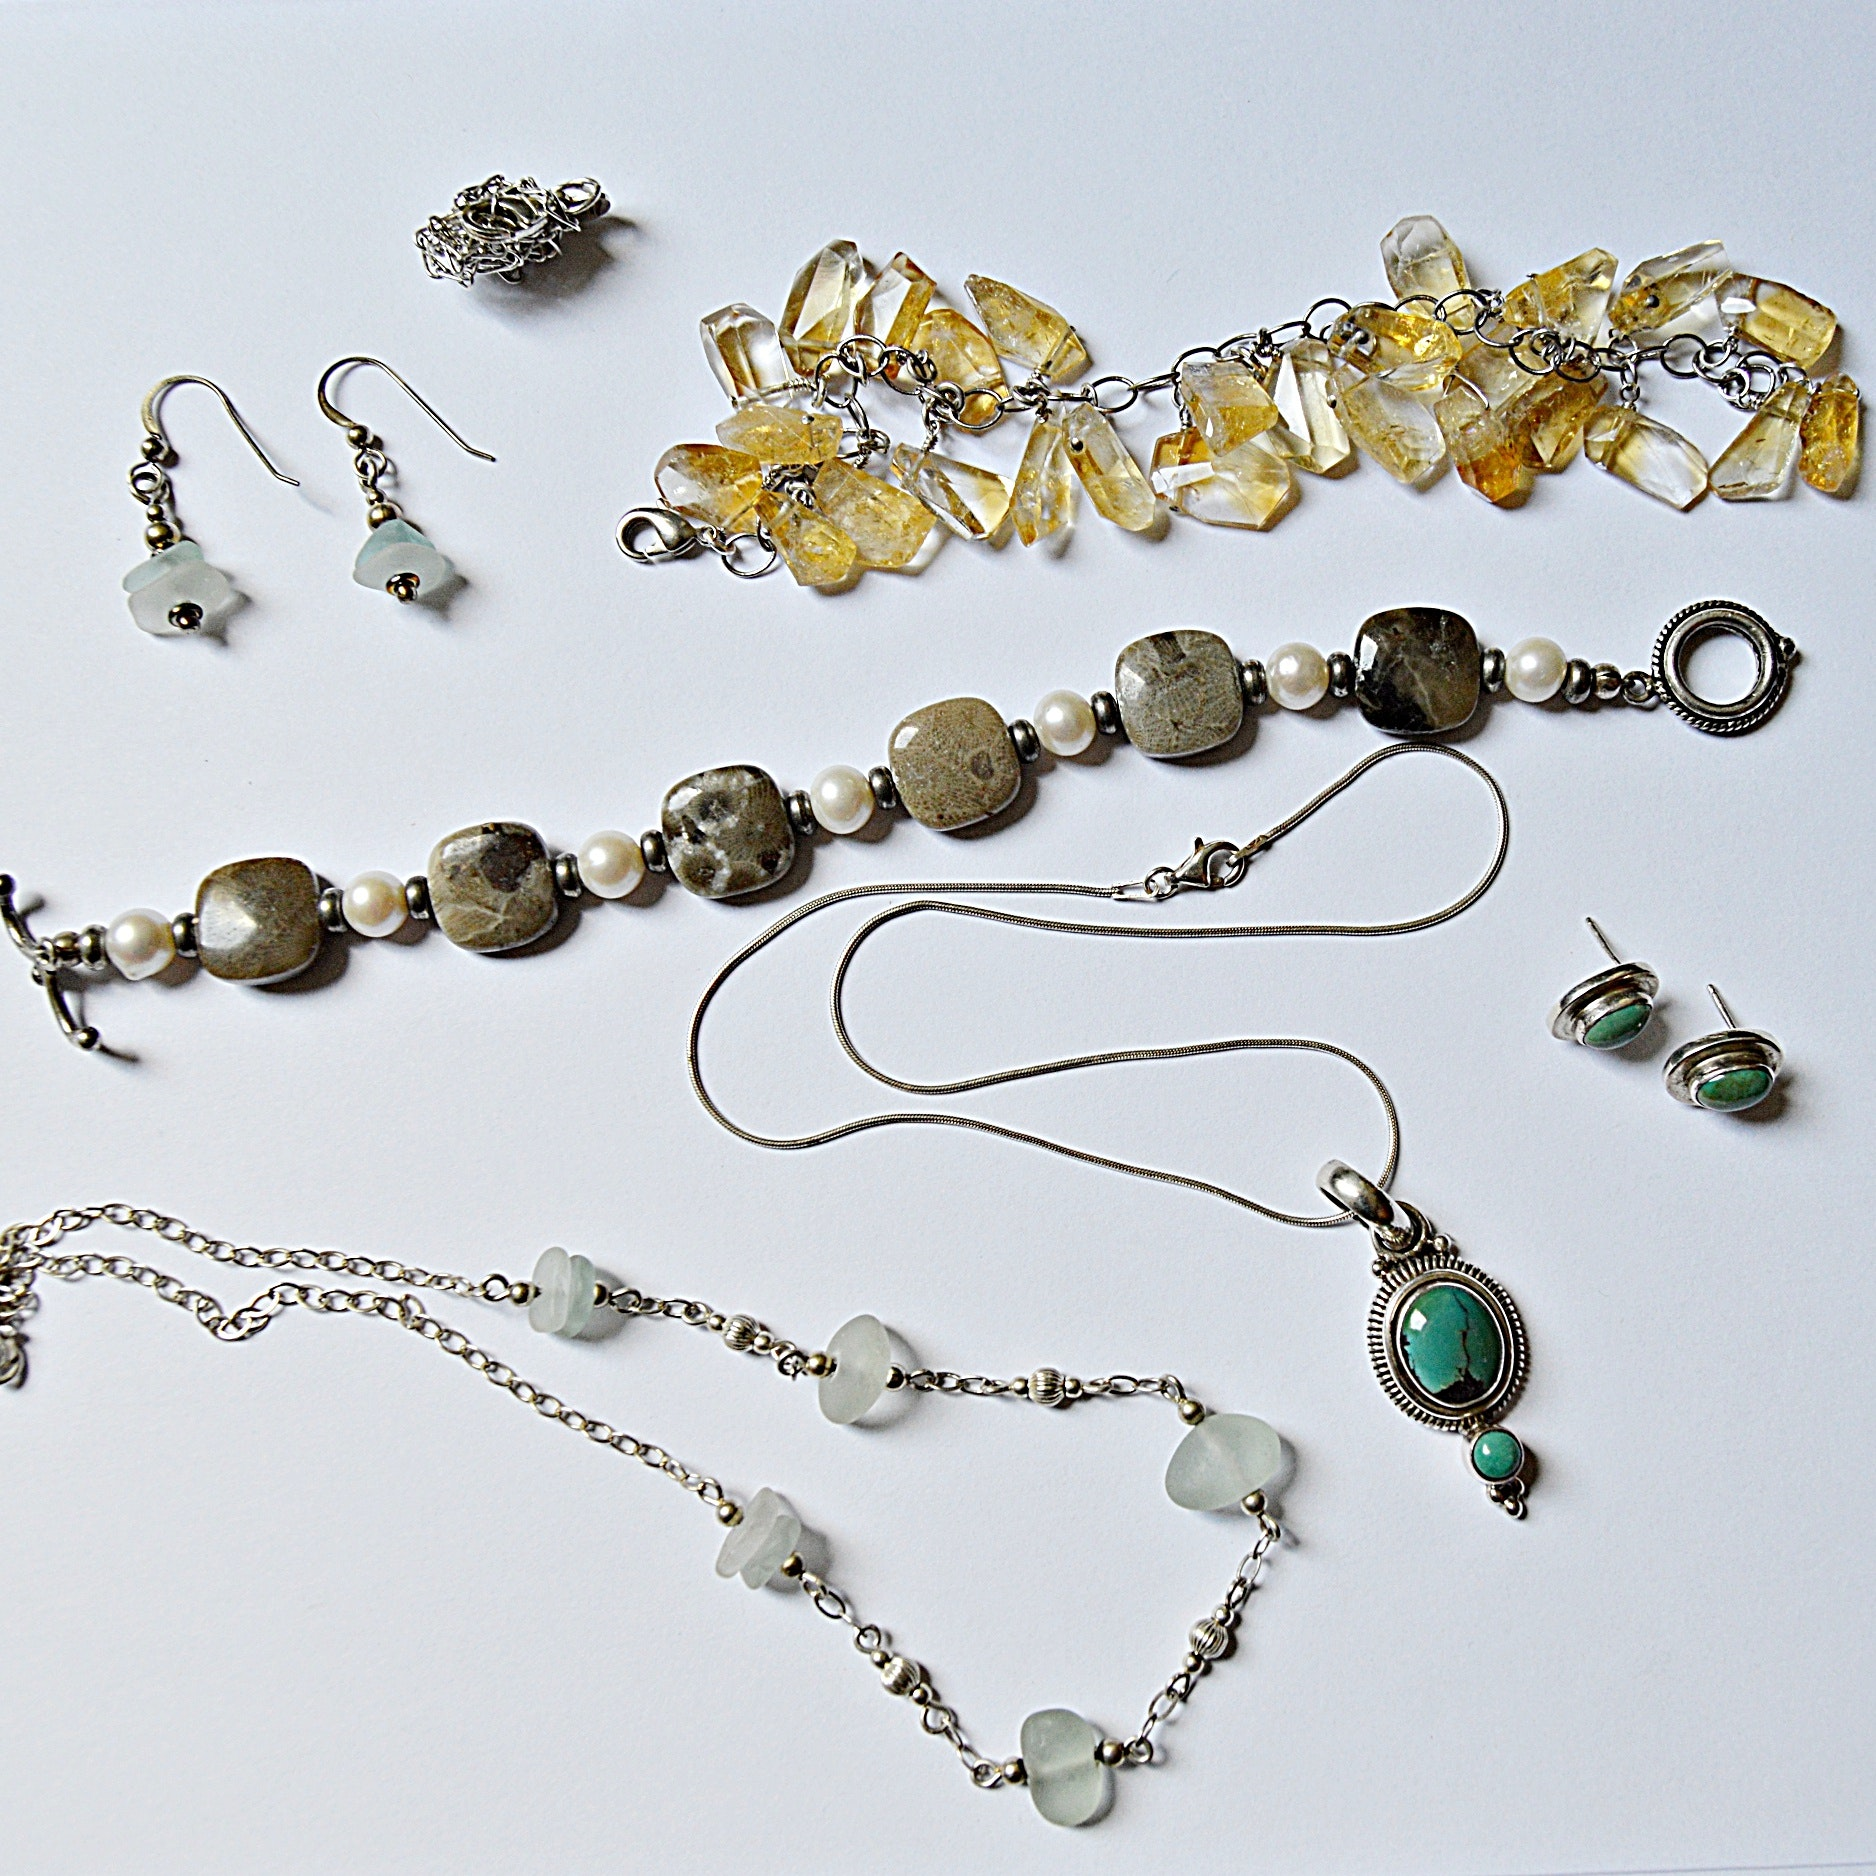 Sterling Silver, Petoskey Stone and Beach Glass Jewelry